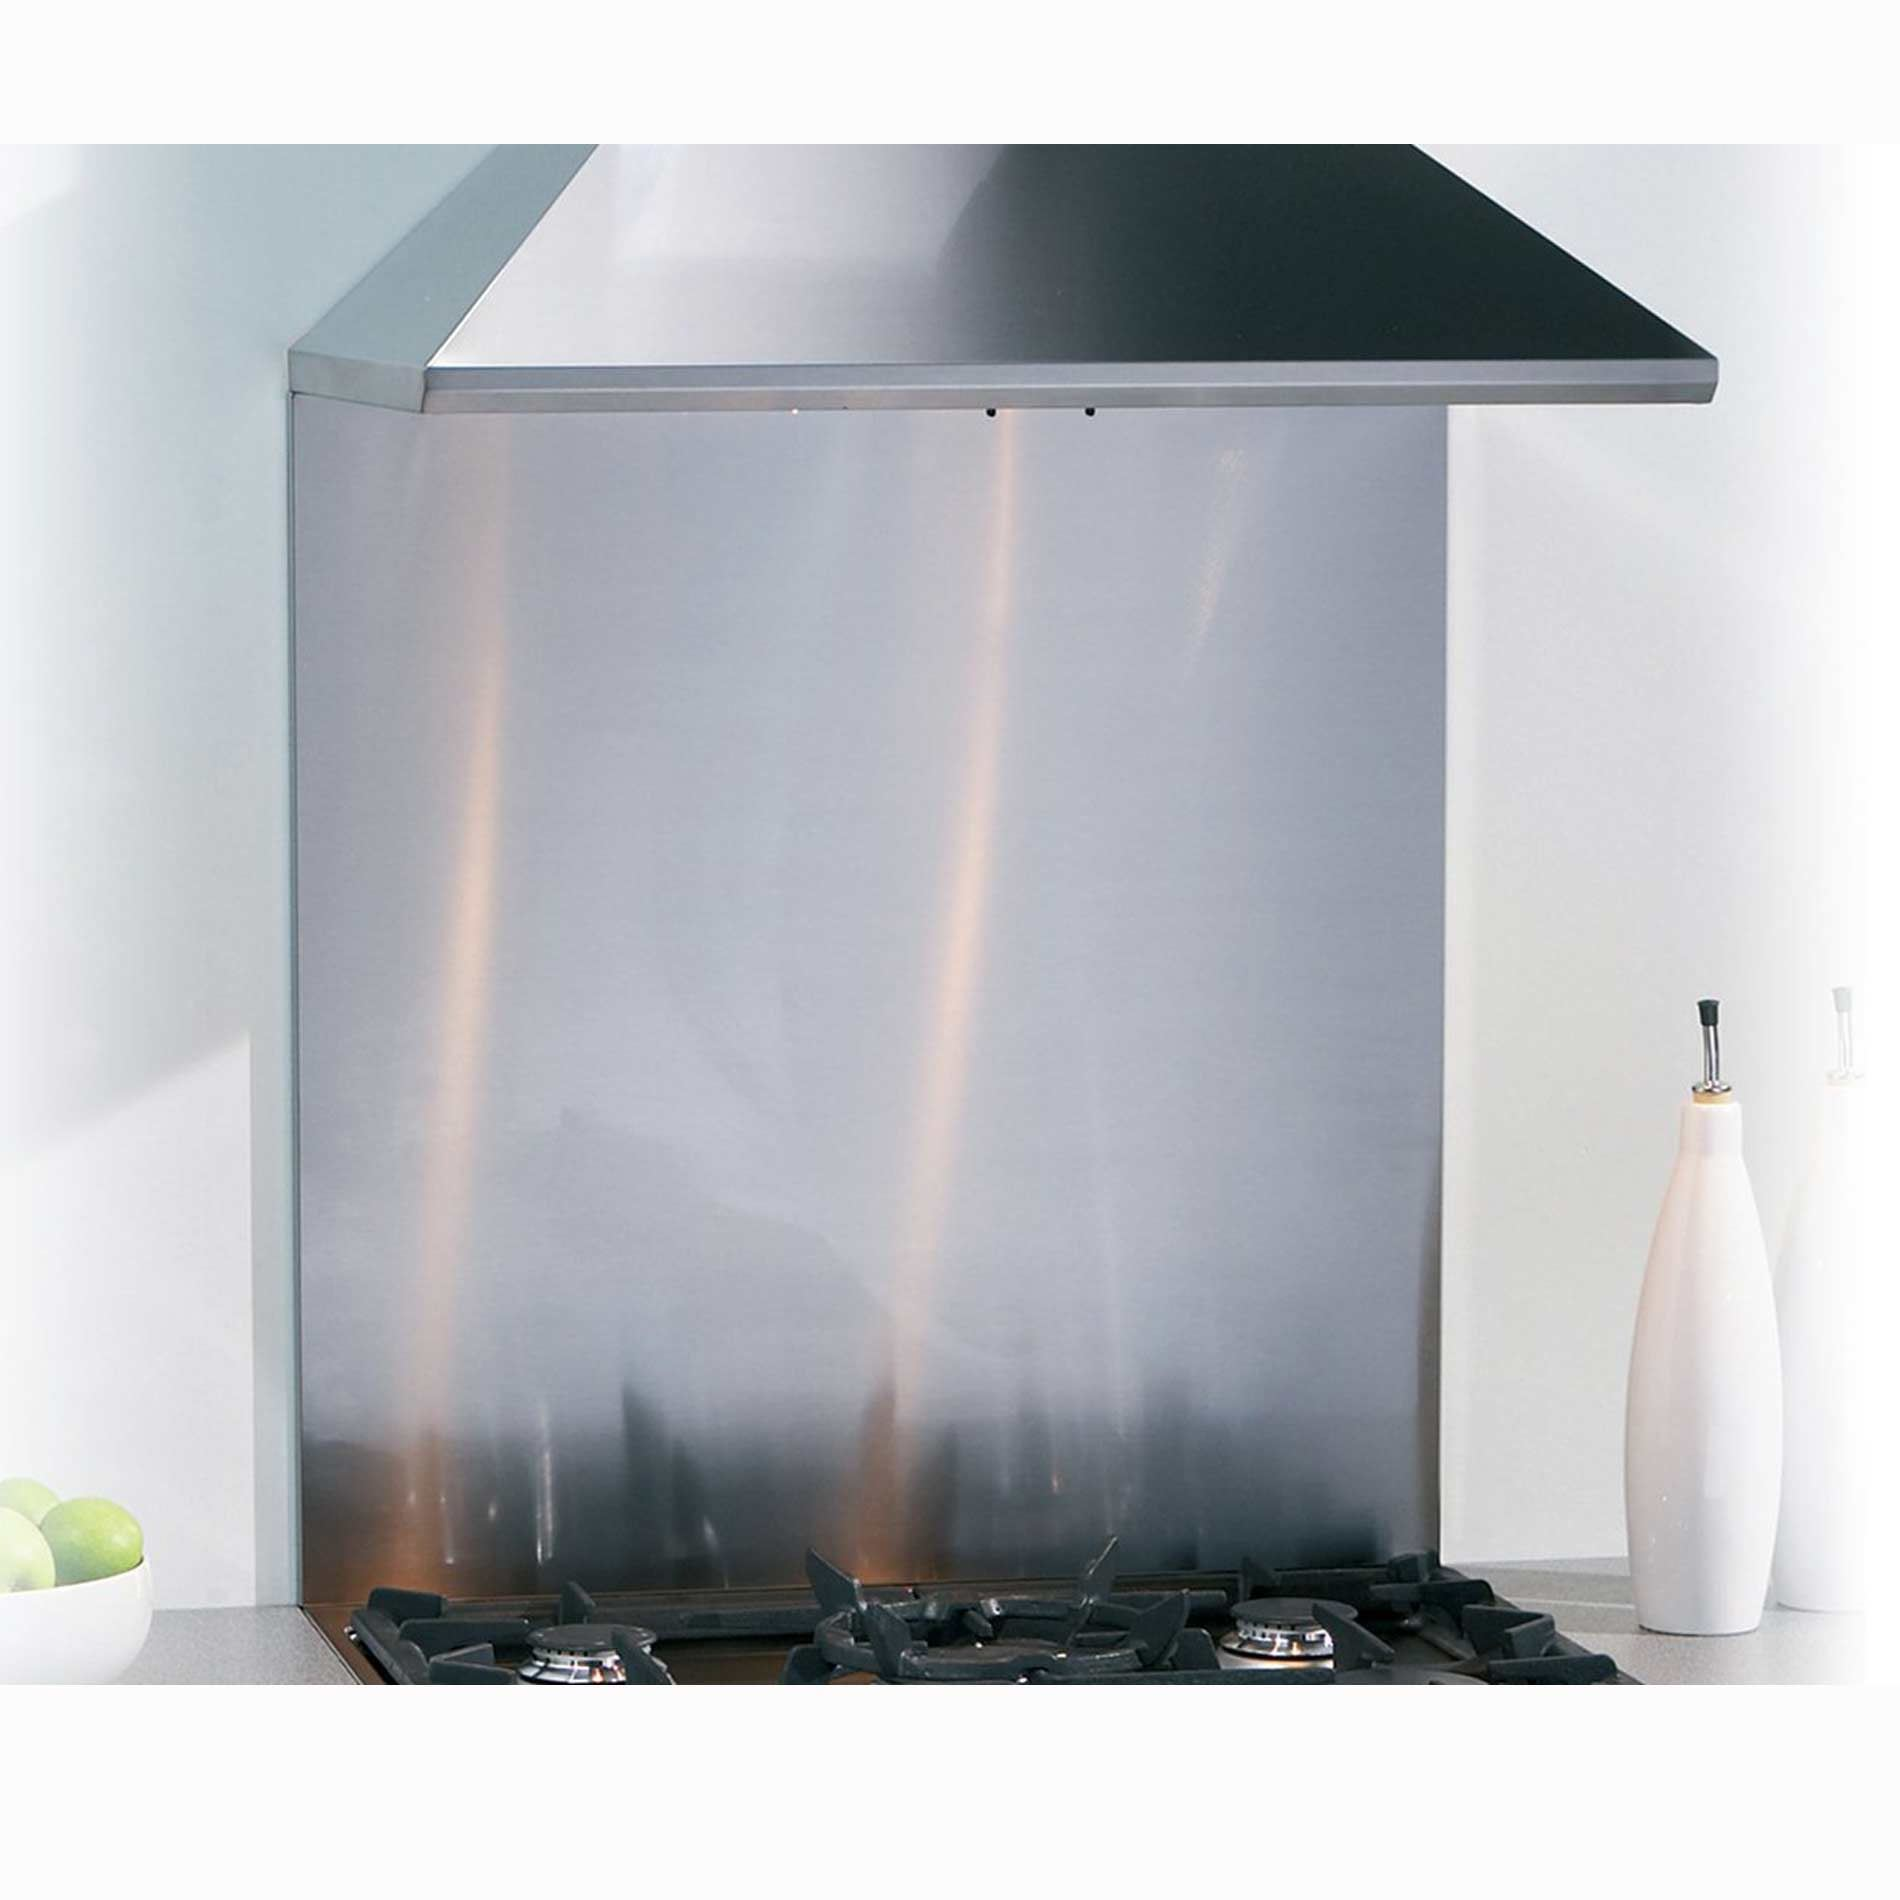 Picture of CSB706 700mm Stainless Steel Splashbacks